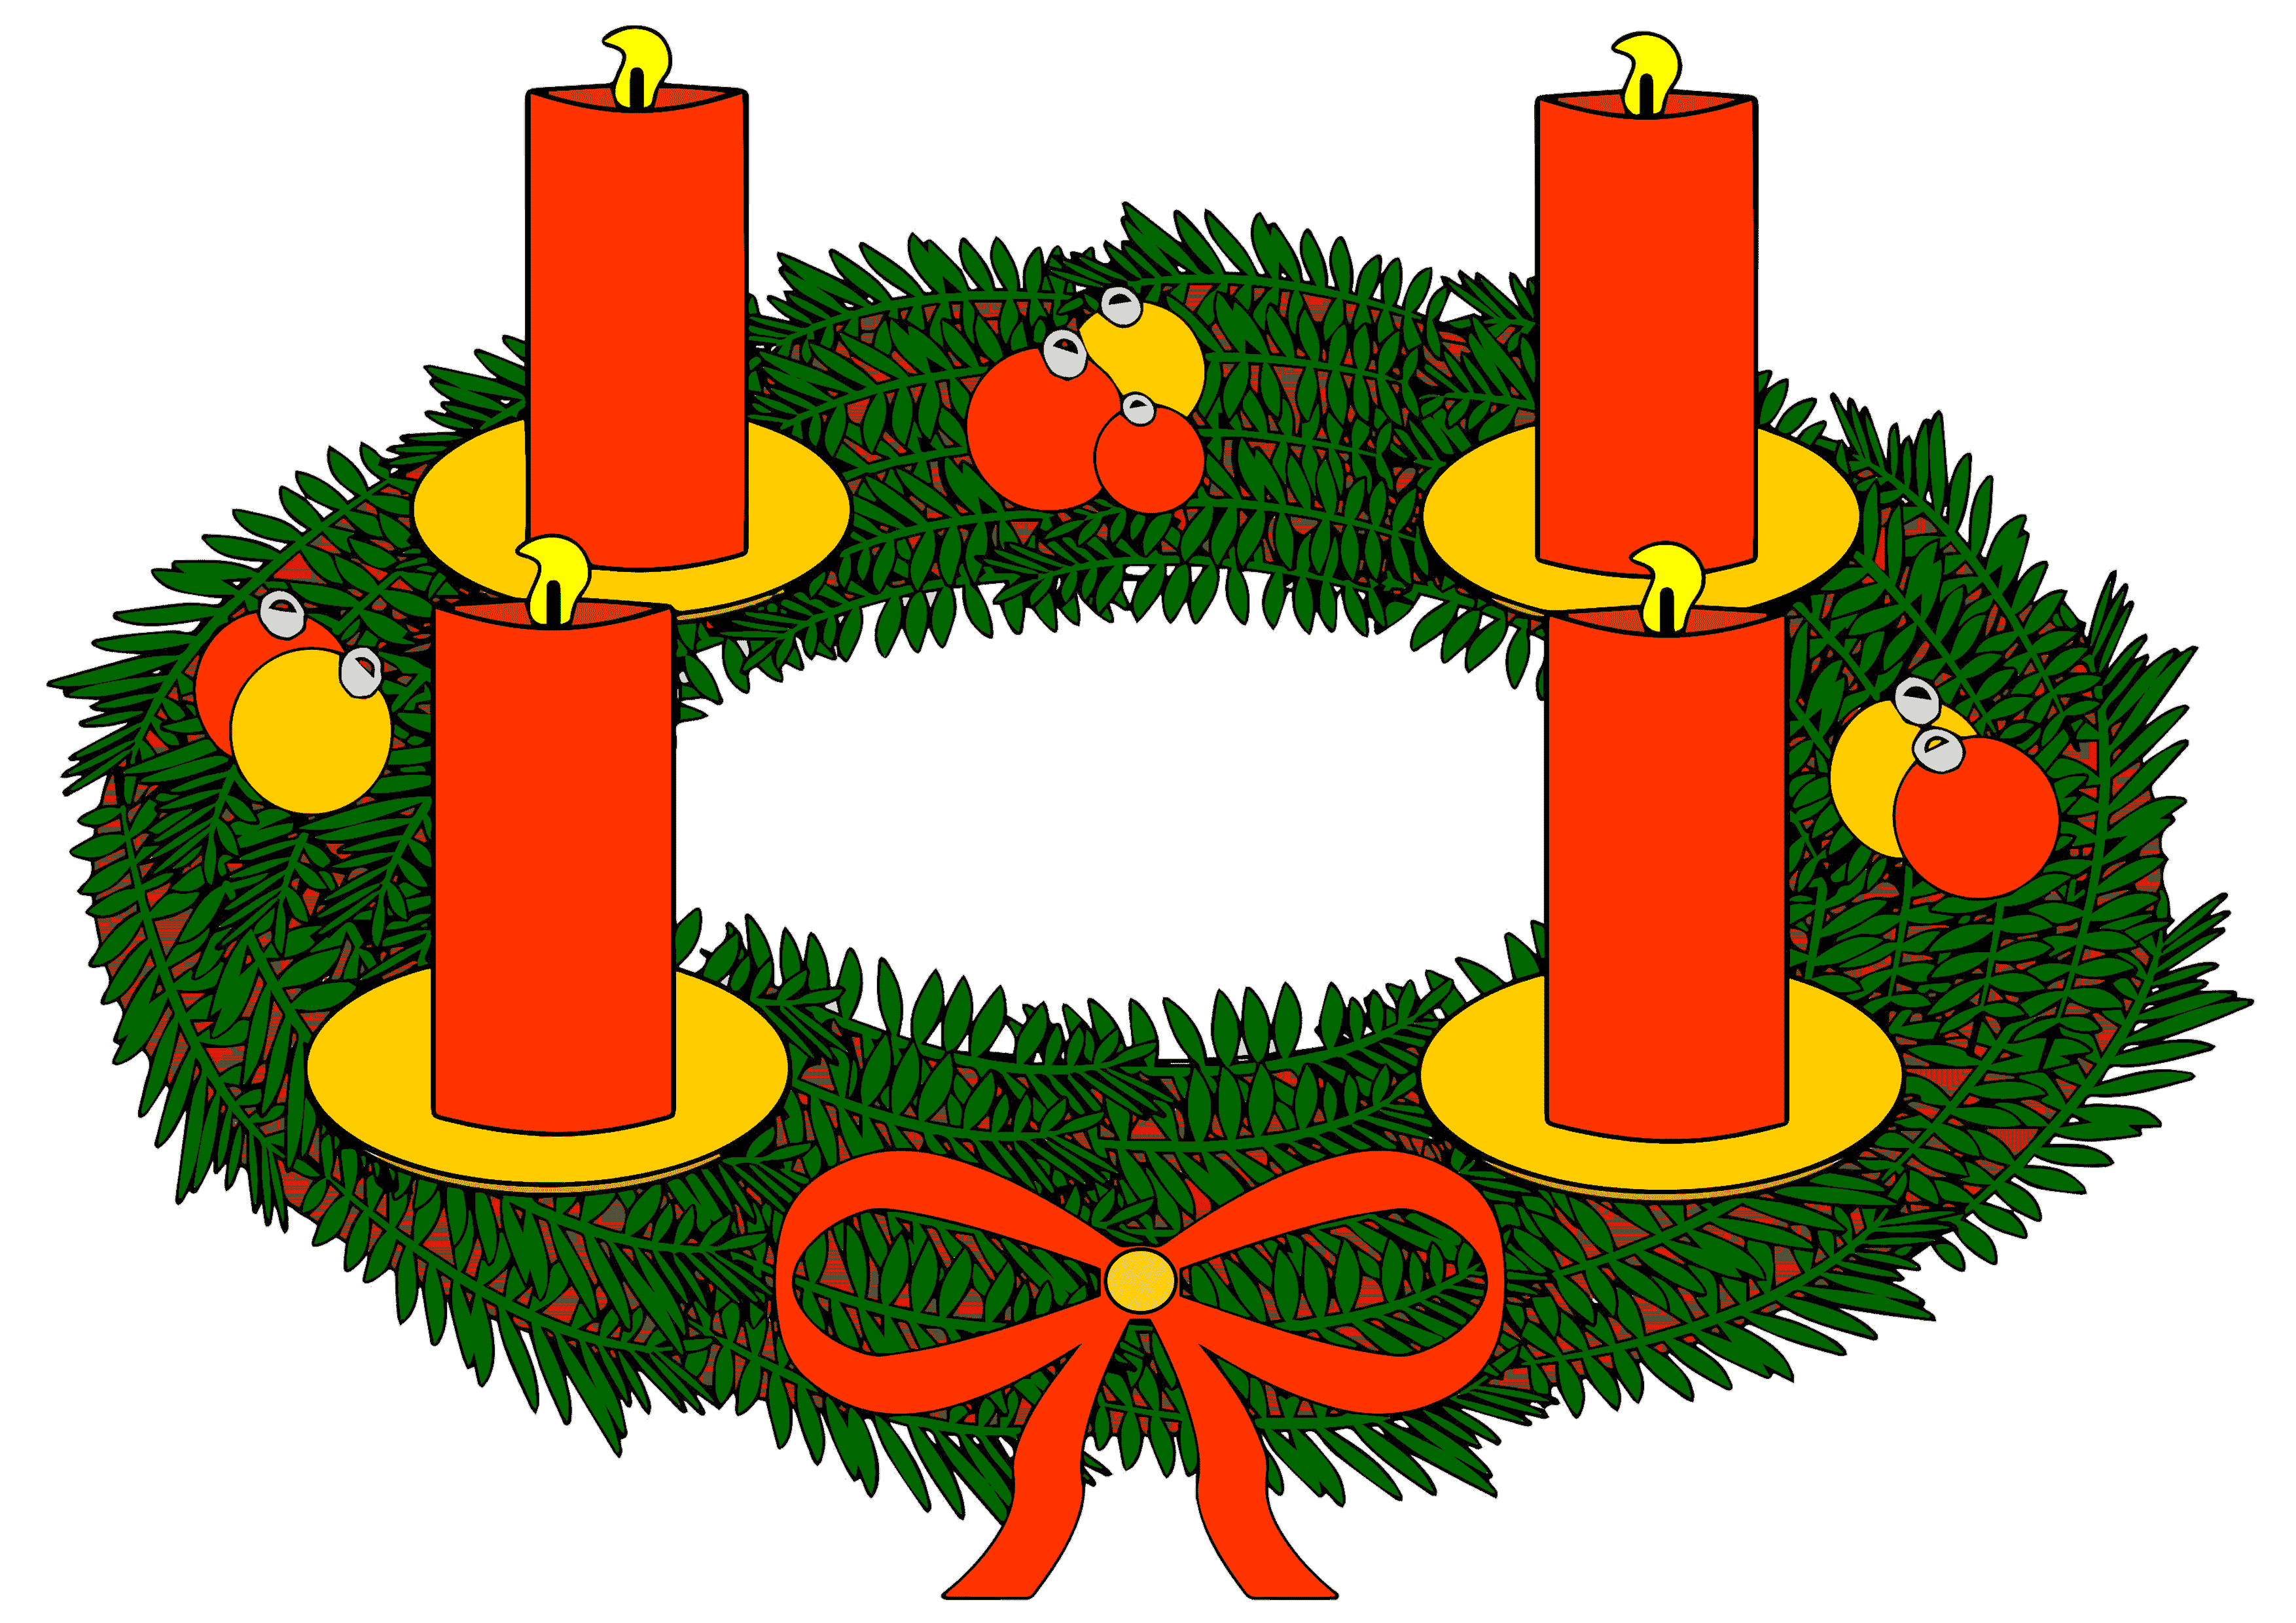 banner royalty free download Advent wreath clipart free.  collection of adventskranz